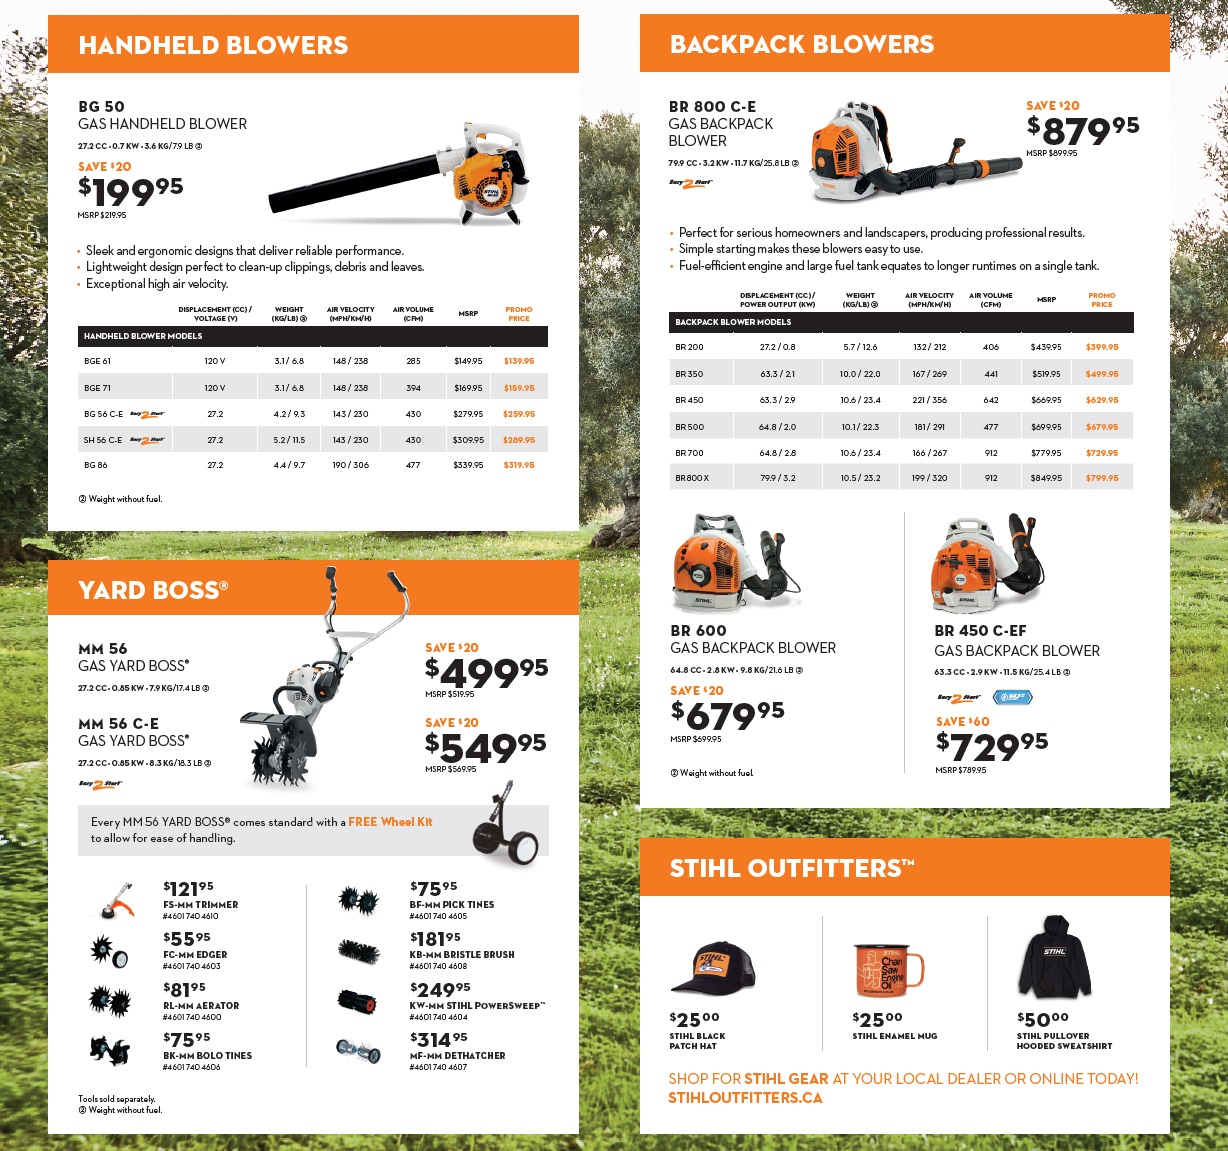 Stihl Authorized Dealer, Harrow, On